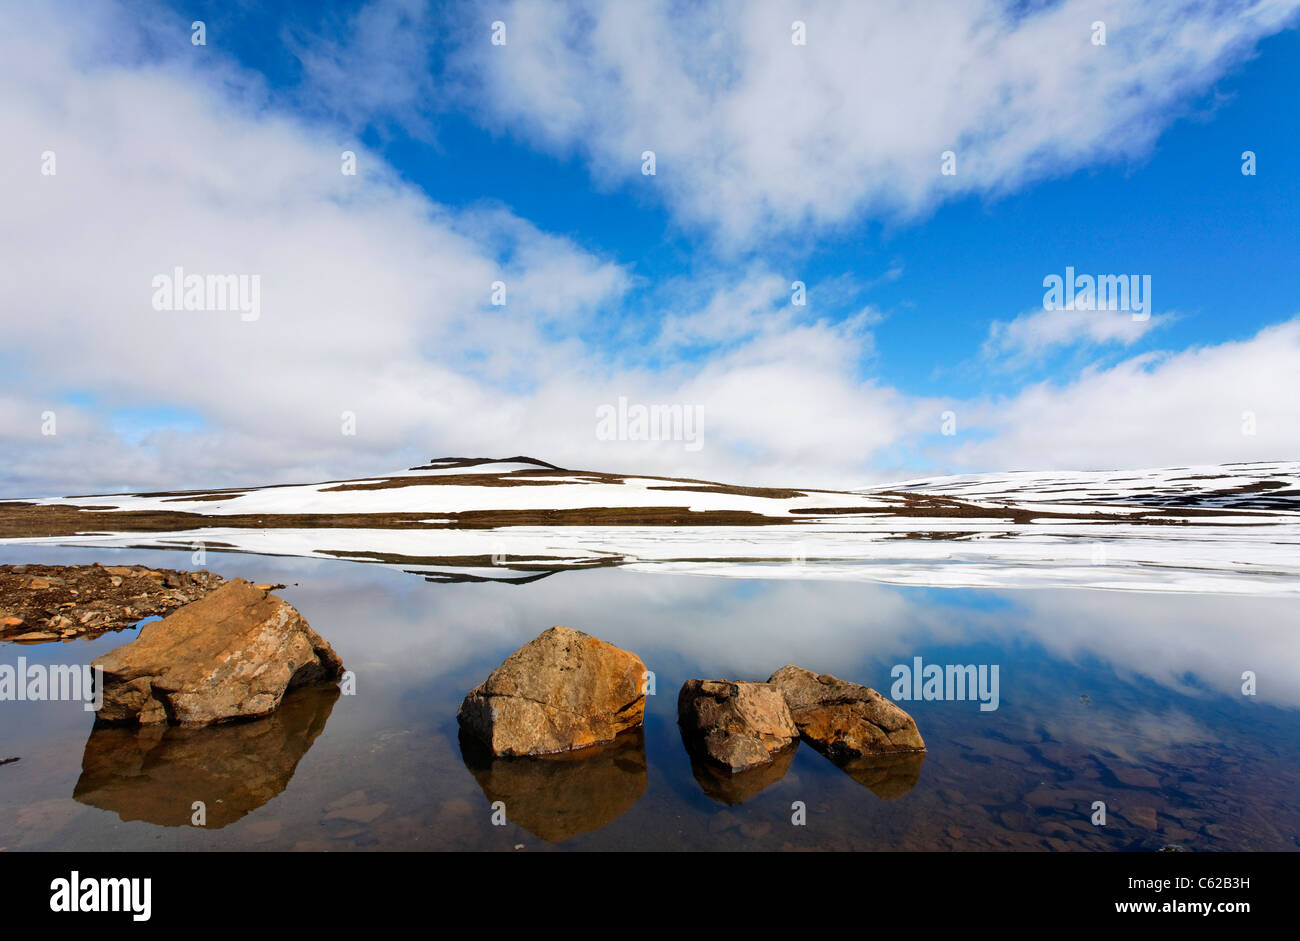 Ice and reflections in a lake, Eastern Fjords, Iceland - Stock Image